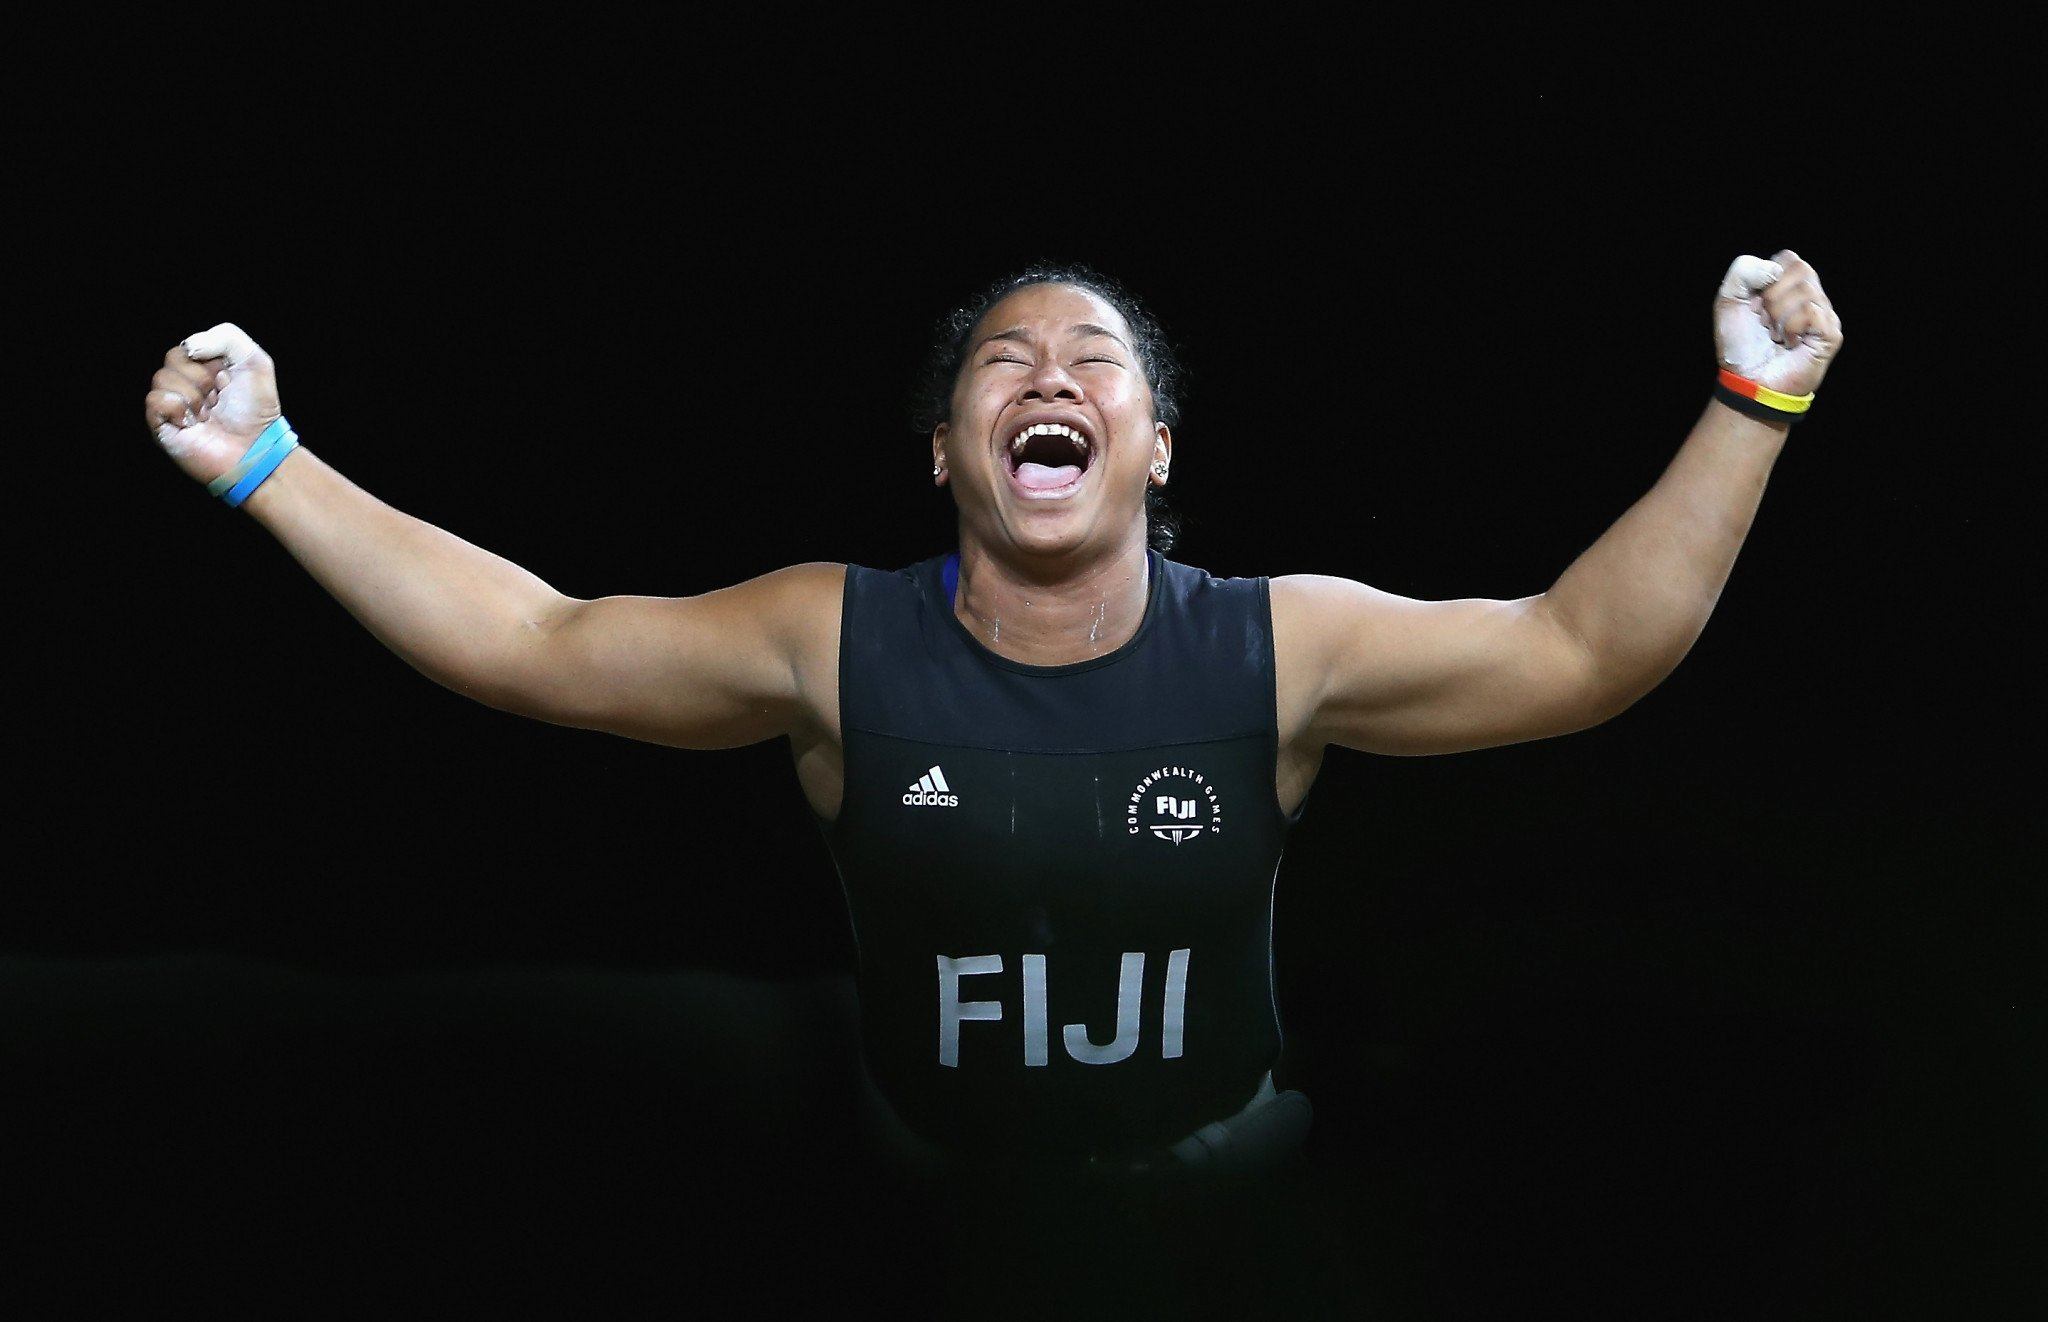 The success of Fiji's Eileen Cikamatana has been one of the good news stories during five turbulent months for the sport ©Getty Images